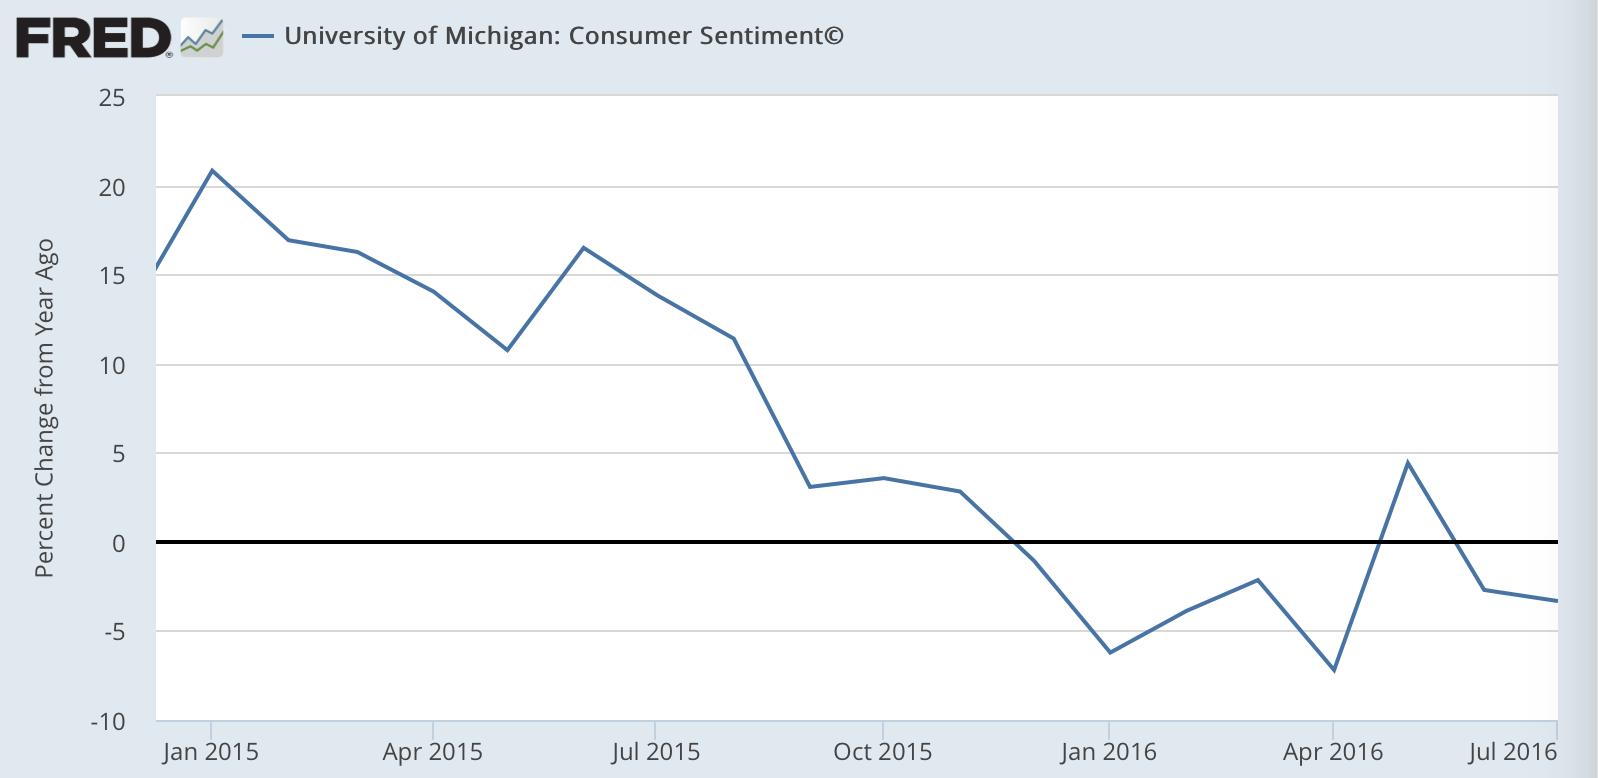 Bulls will tell you: Don't worry, consumer credit is at all time ...